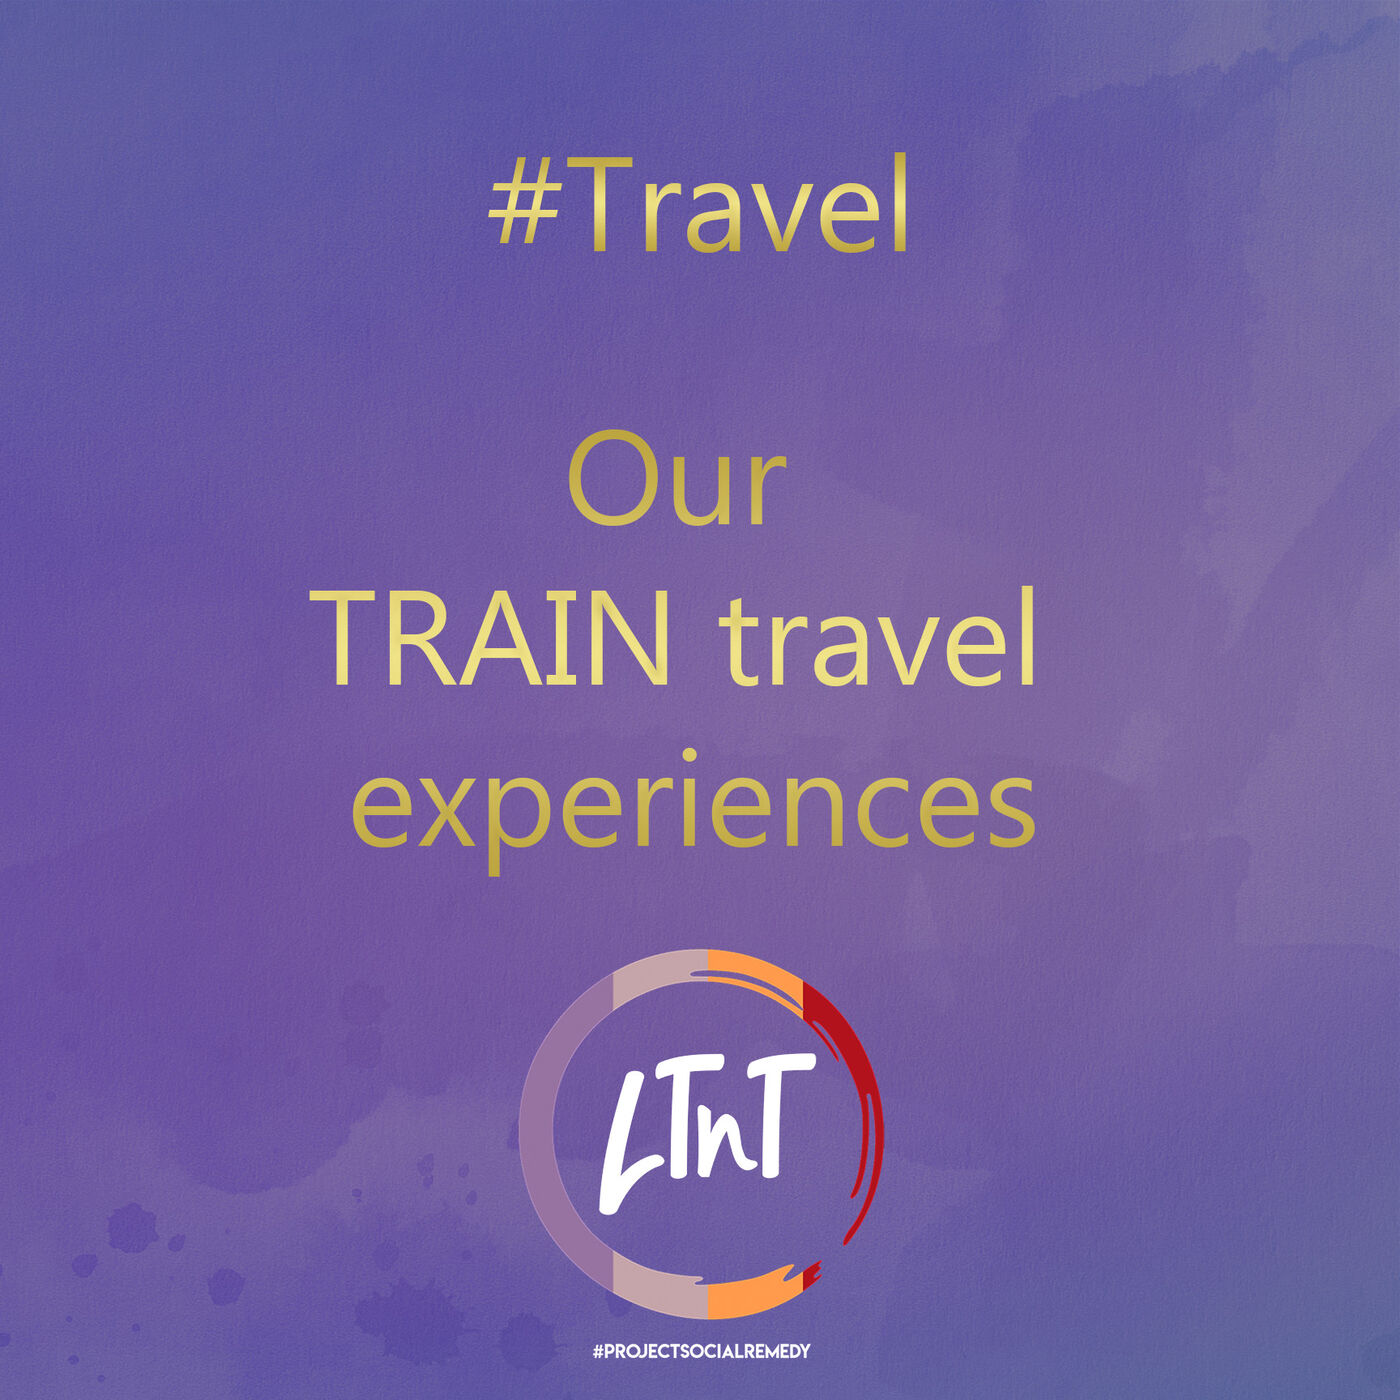 Our TRAIN travel experiences